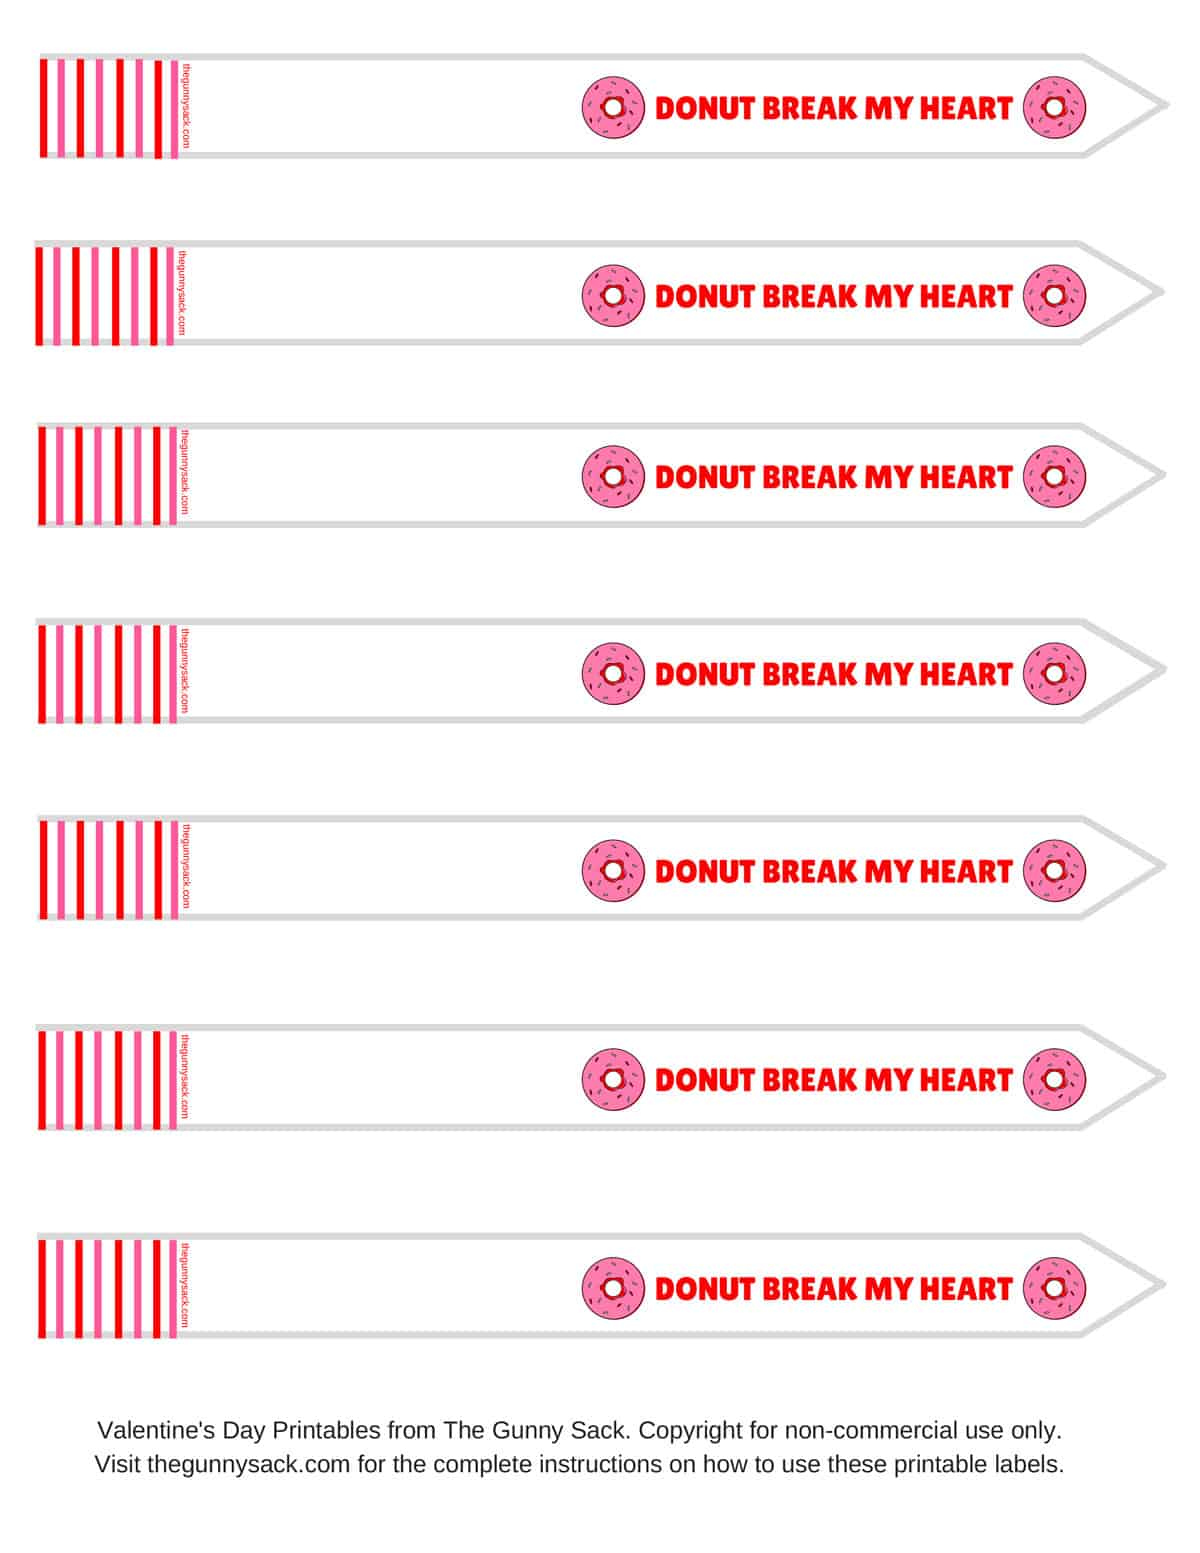 Donut Break My Heart Test Tube Printable Labels